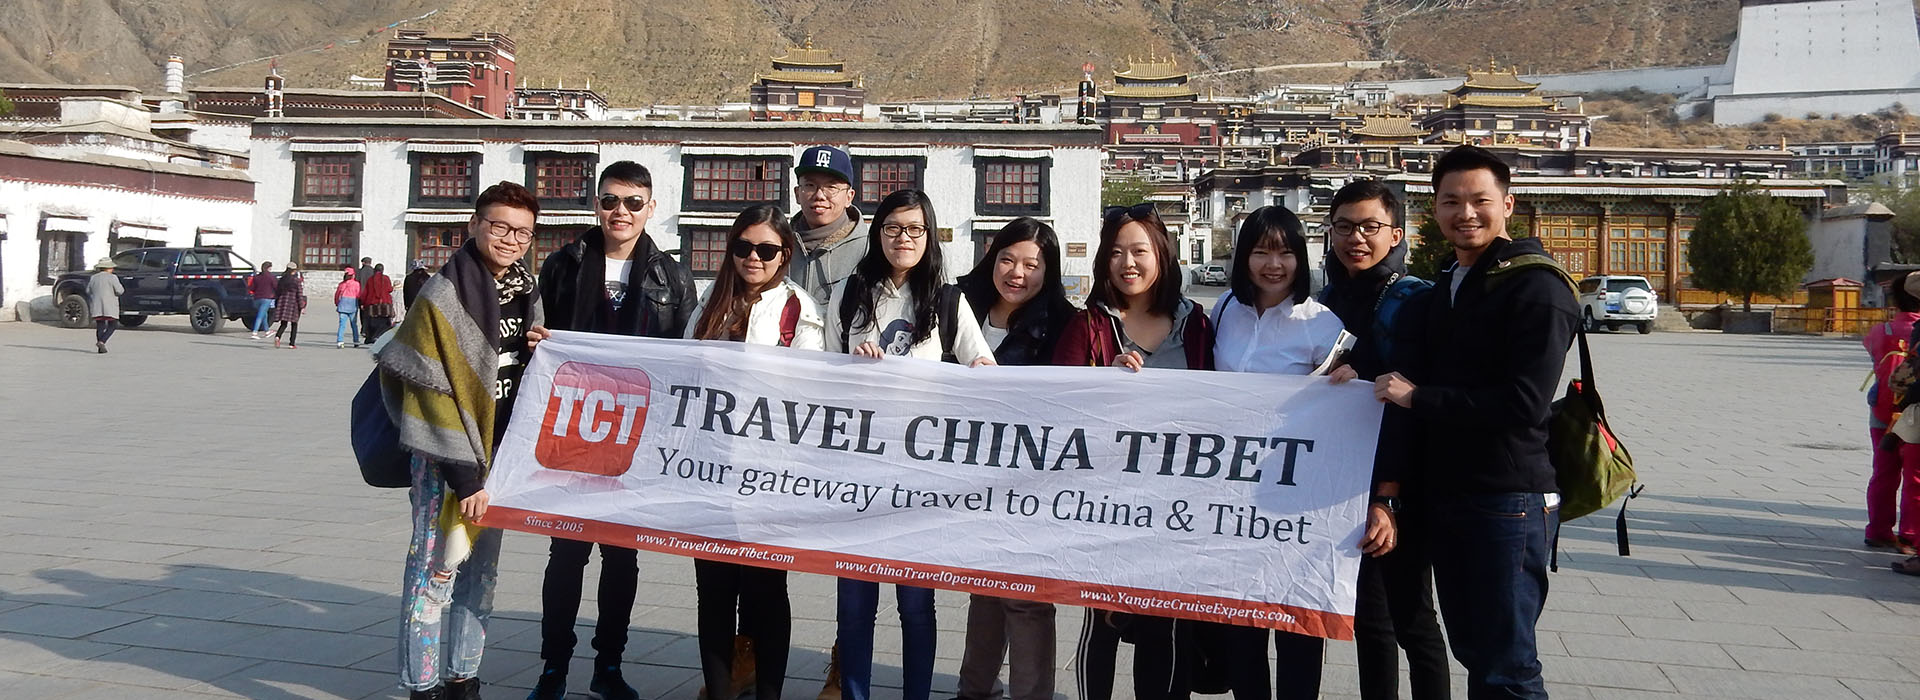 Your Gateway Travel to China & Tibet